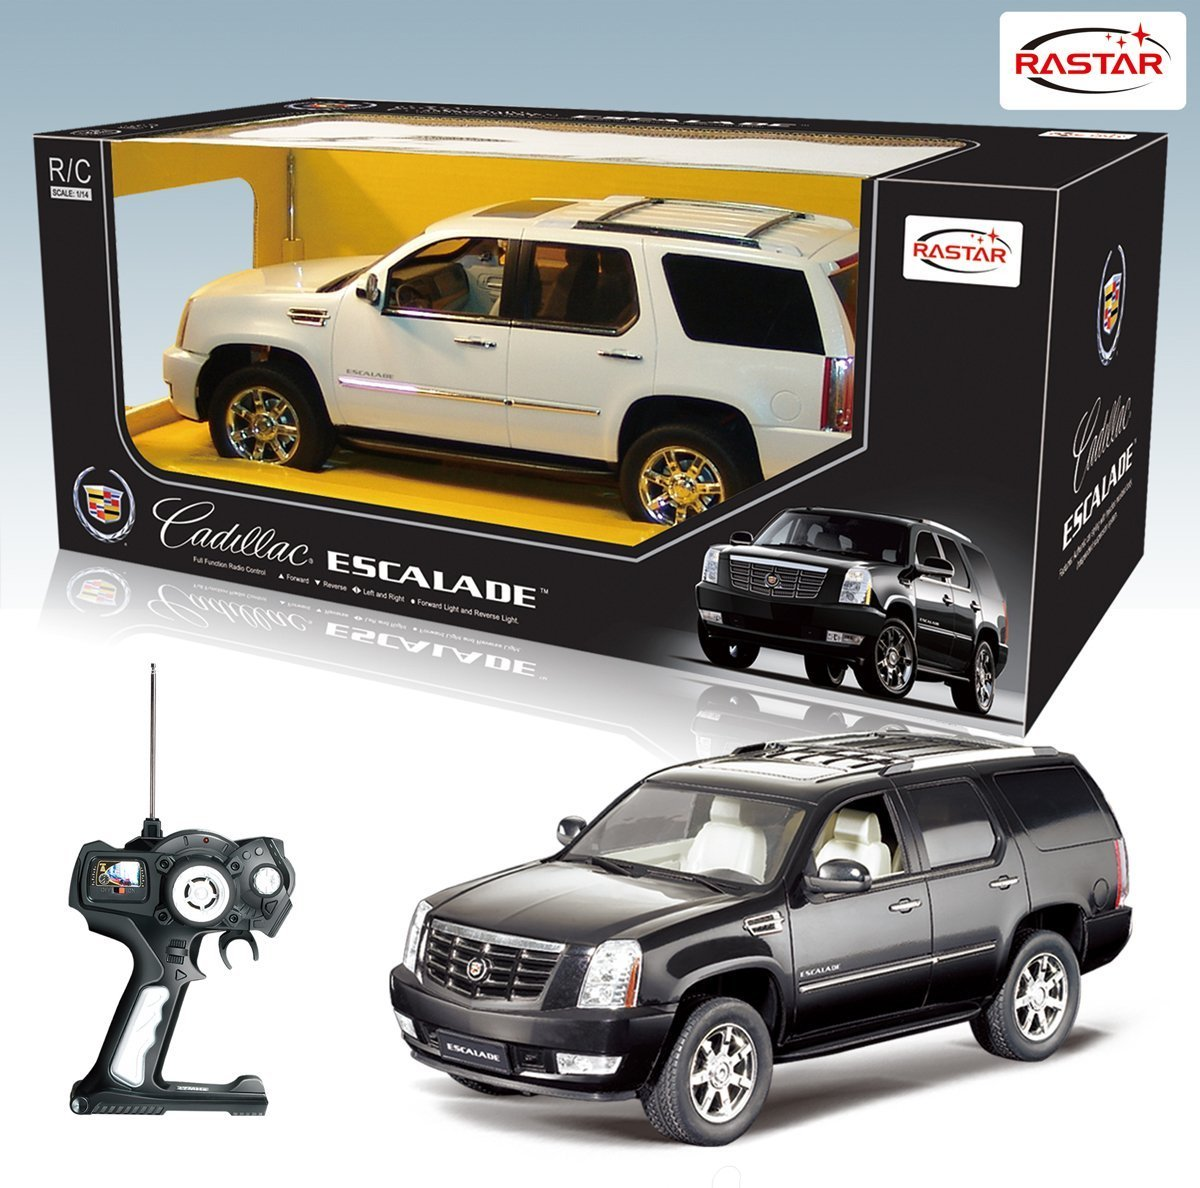 amazoncom 114 scale black cadillac escalade 2008 rc model car official licensed product toys games